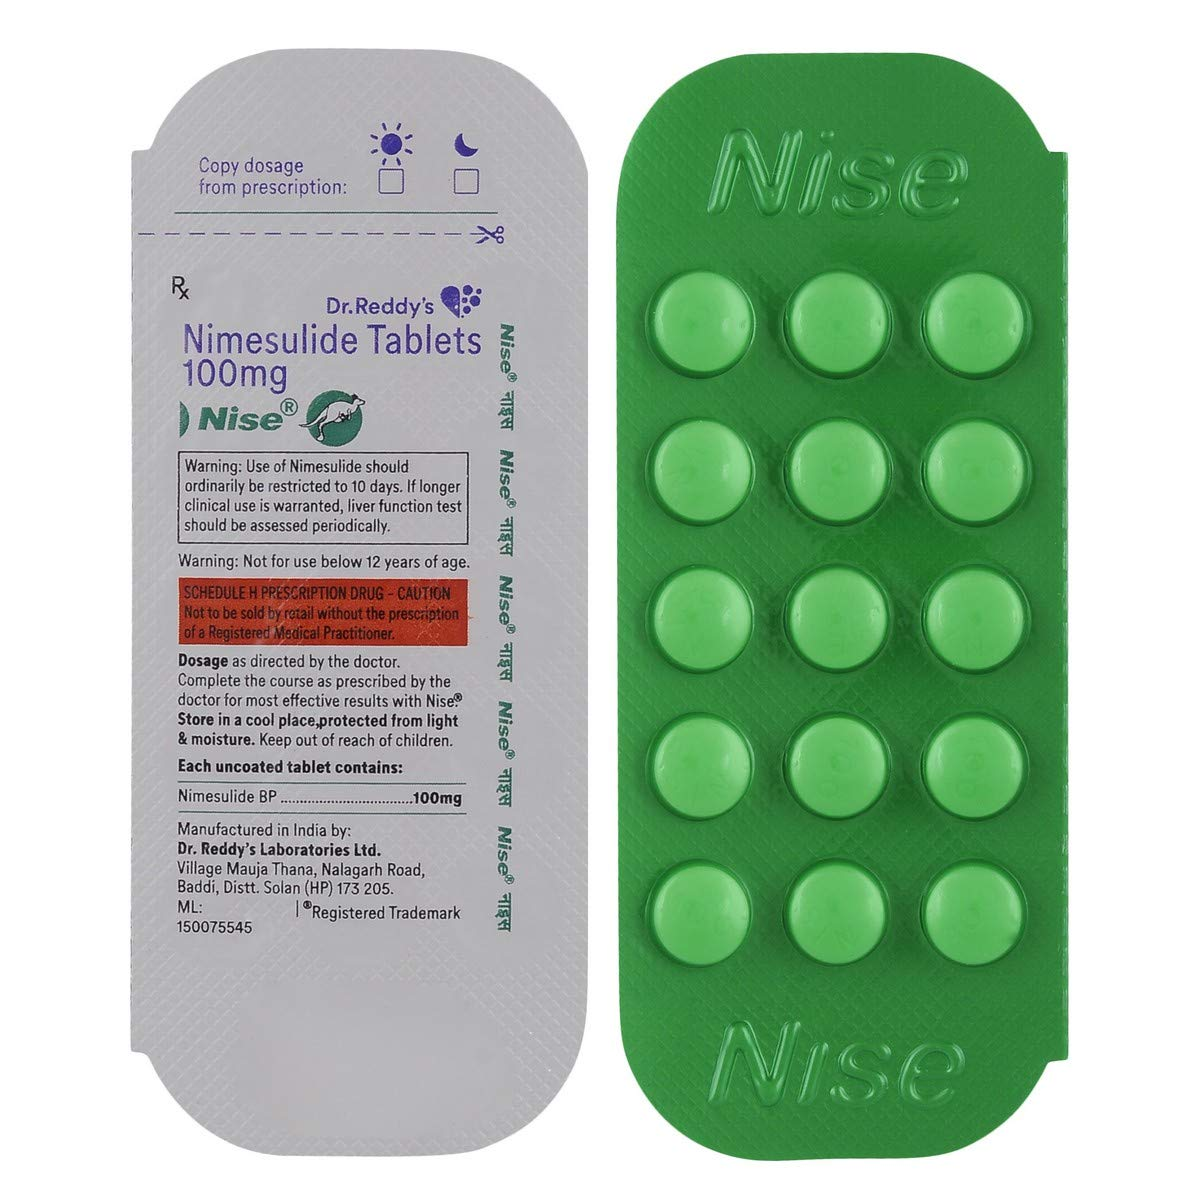 Nise 100mg - Blister Pack of 15 Tablets: Amazon.in